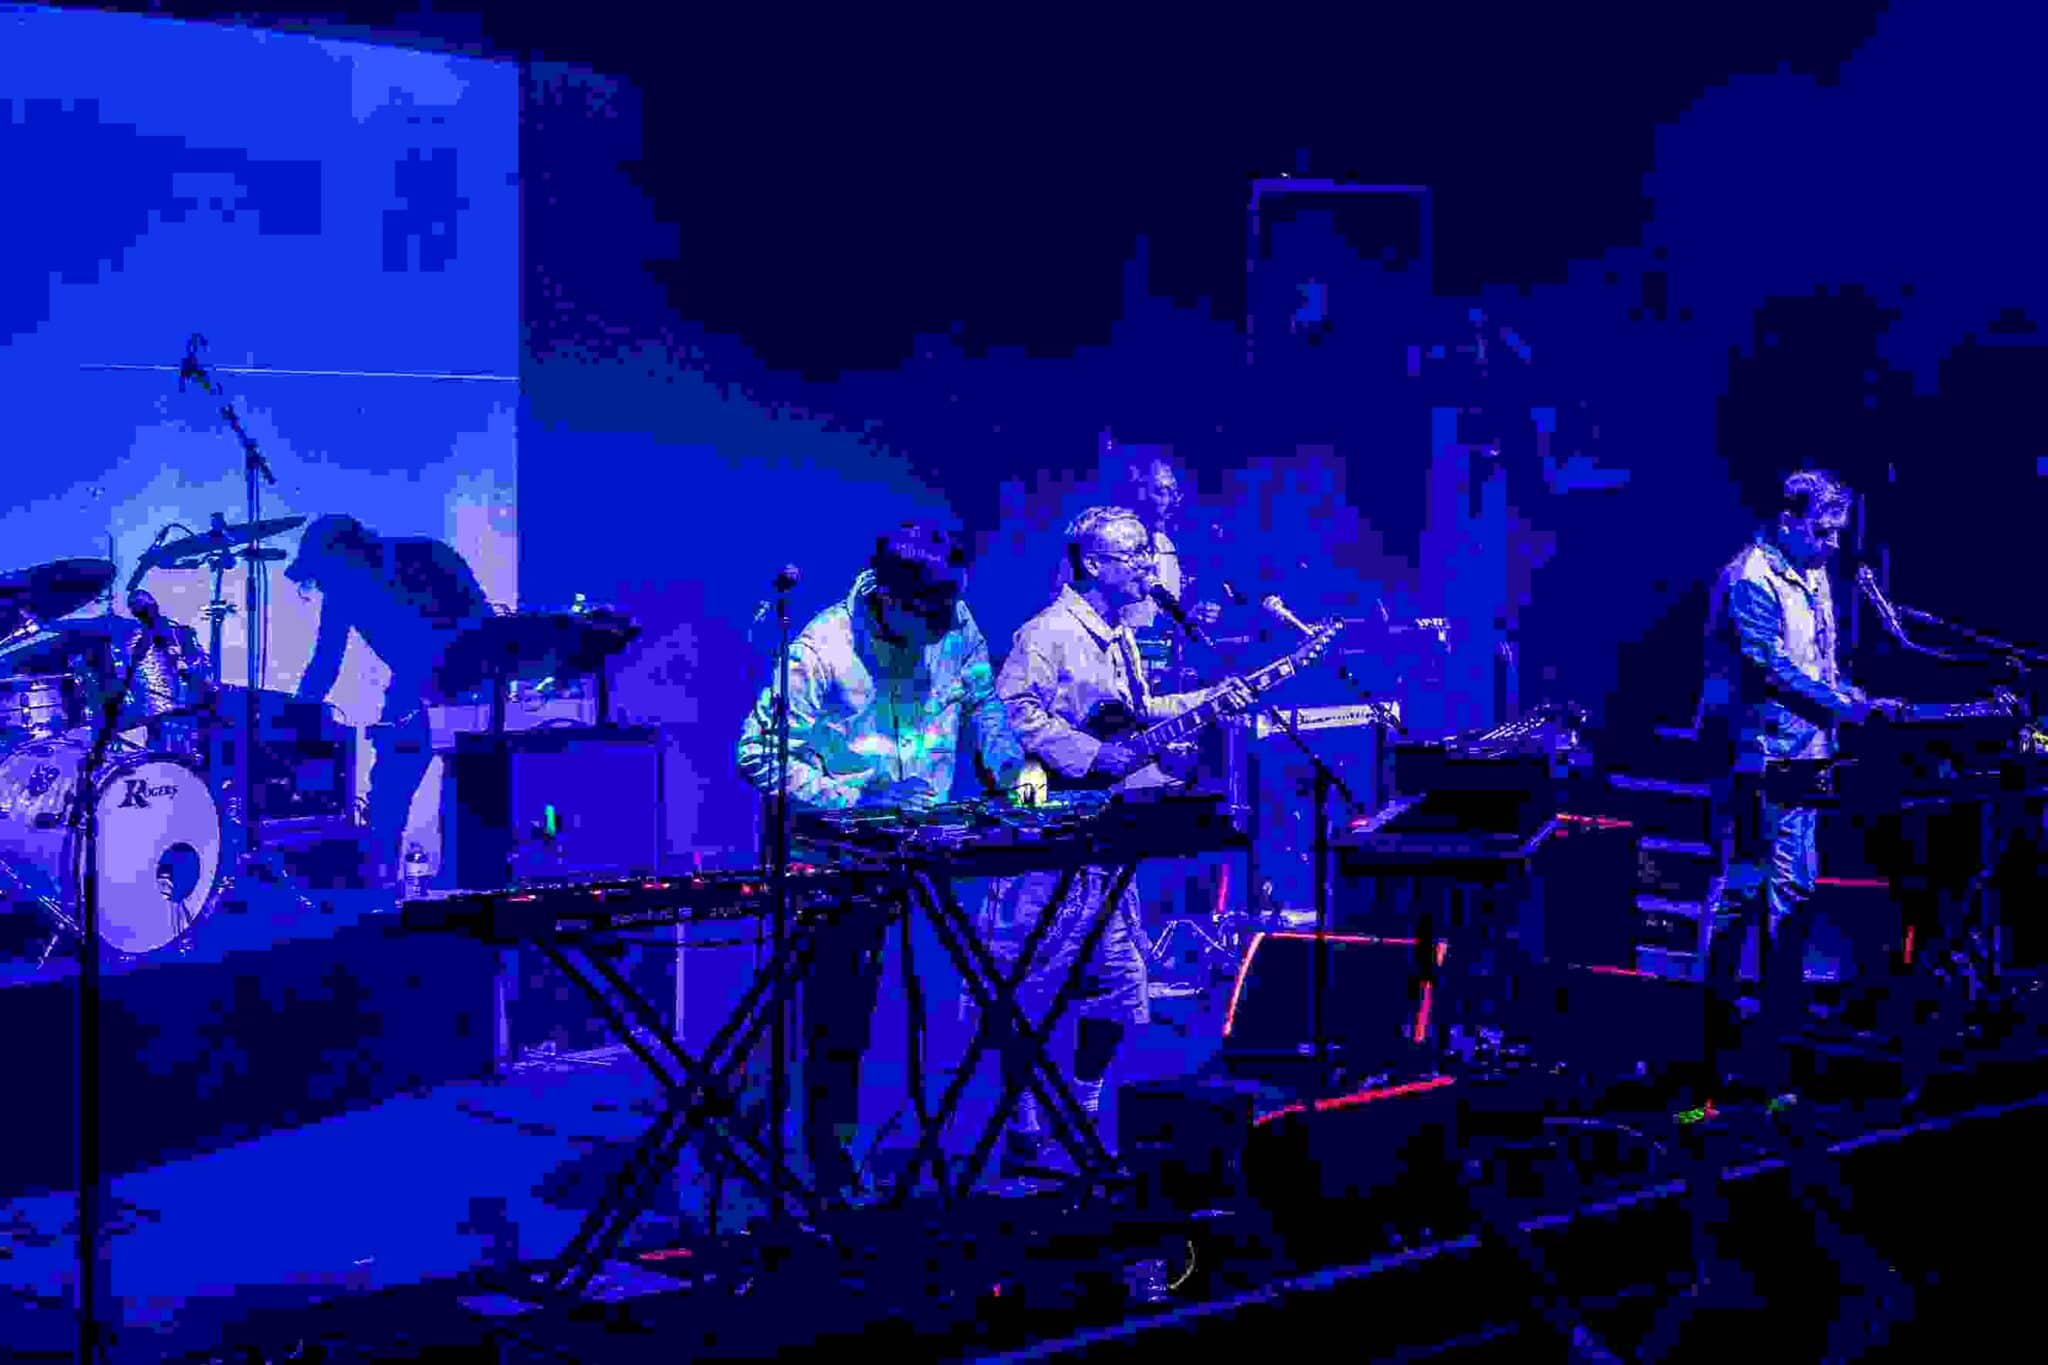 Hot Chip at First Avenue - Music in Minnesota